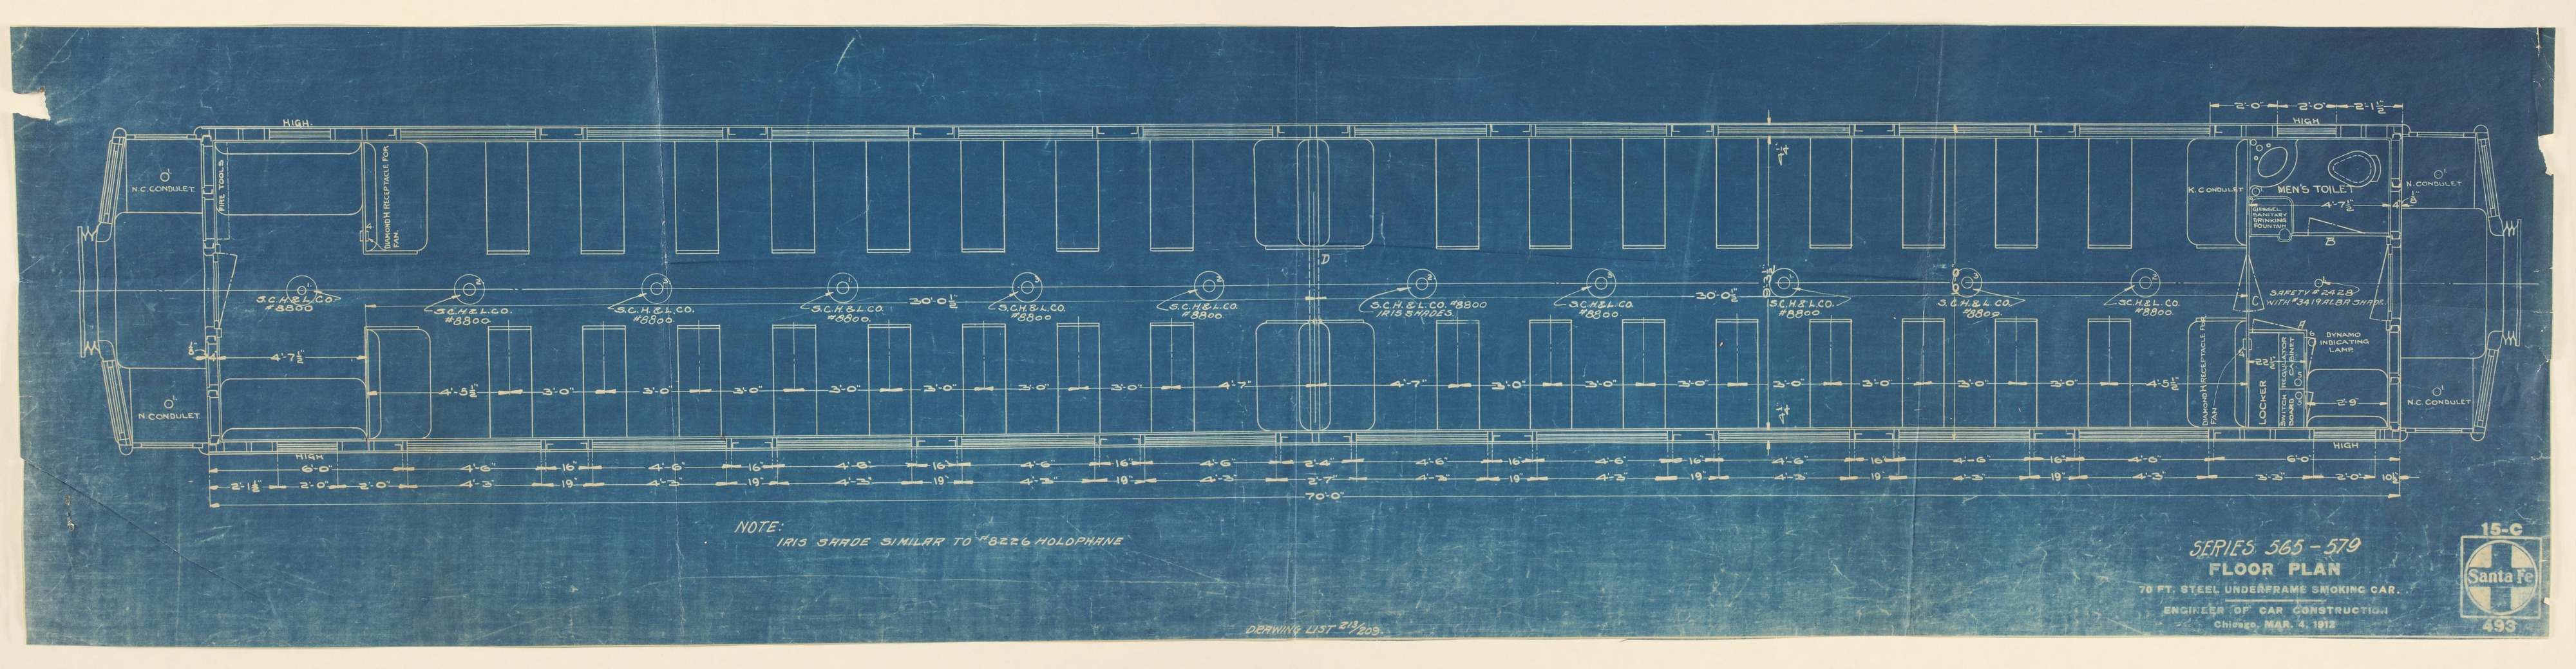 Santa Fe smoking car floor plan